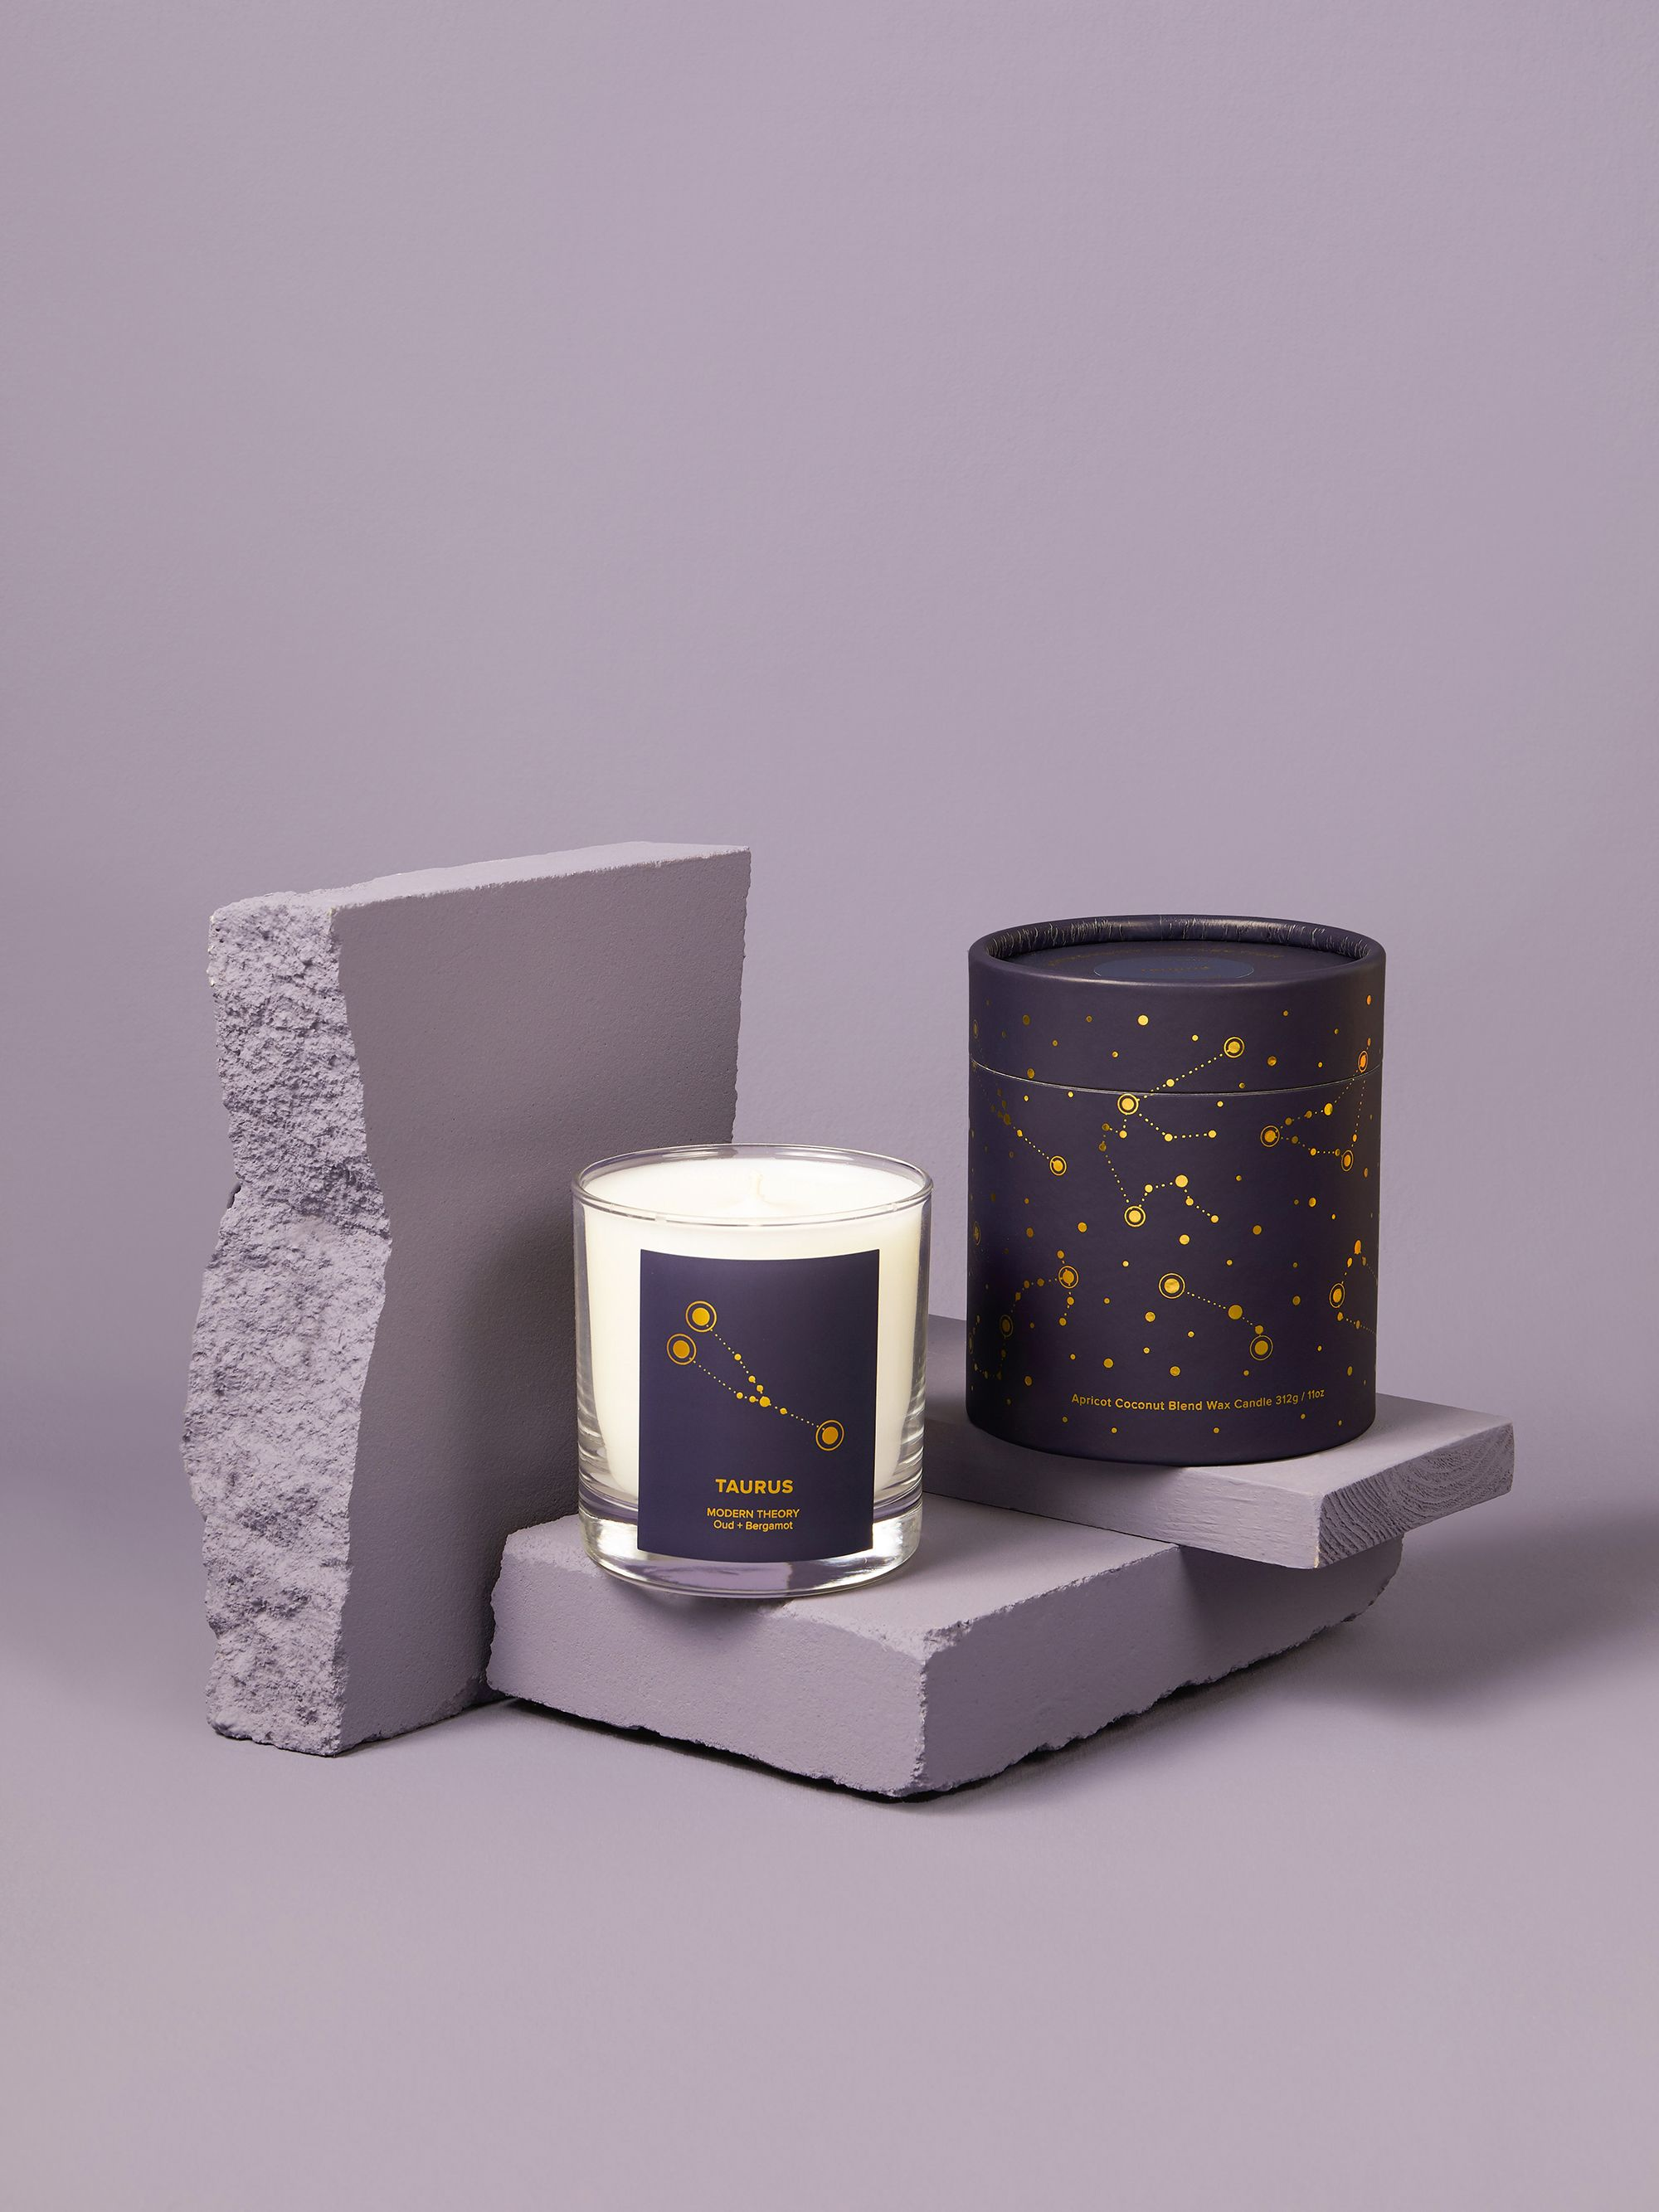 Product Image for Taurus Candle